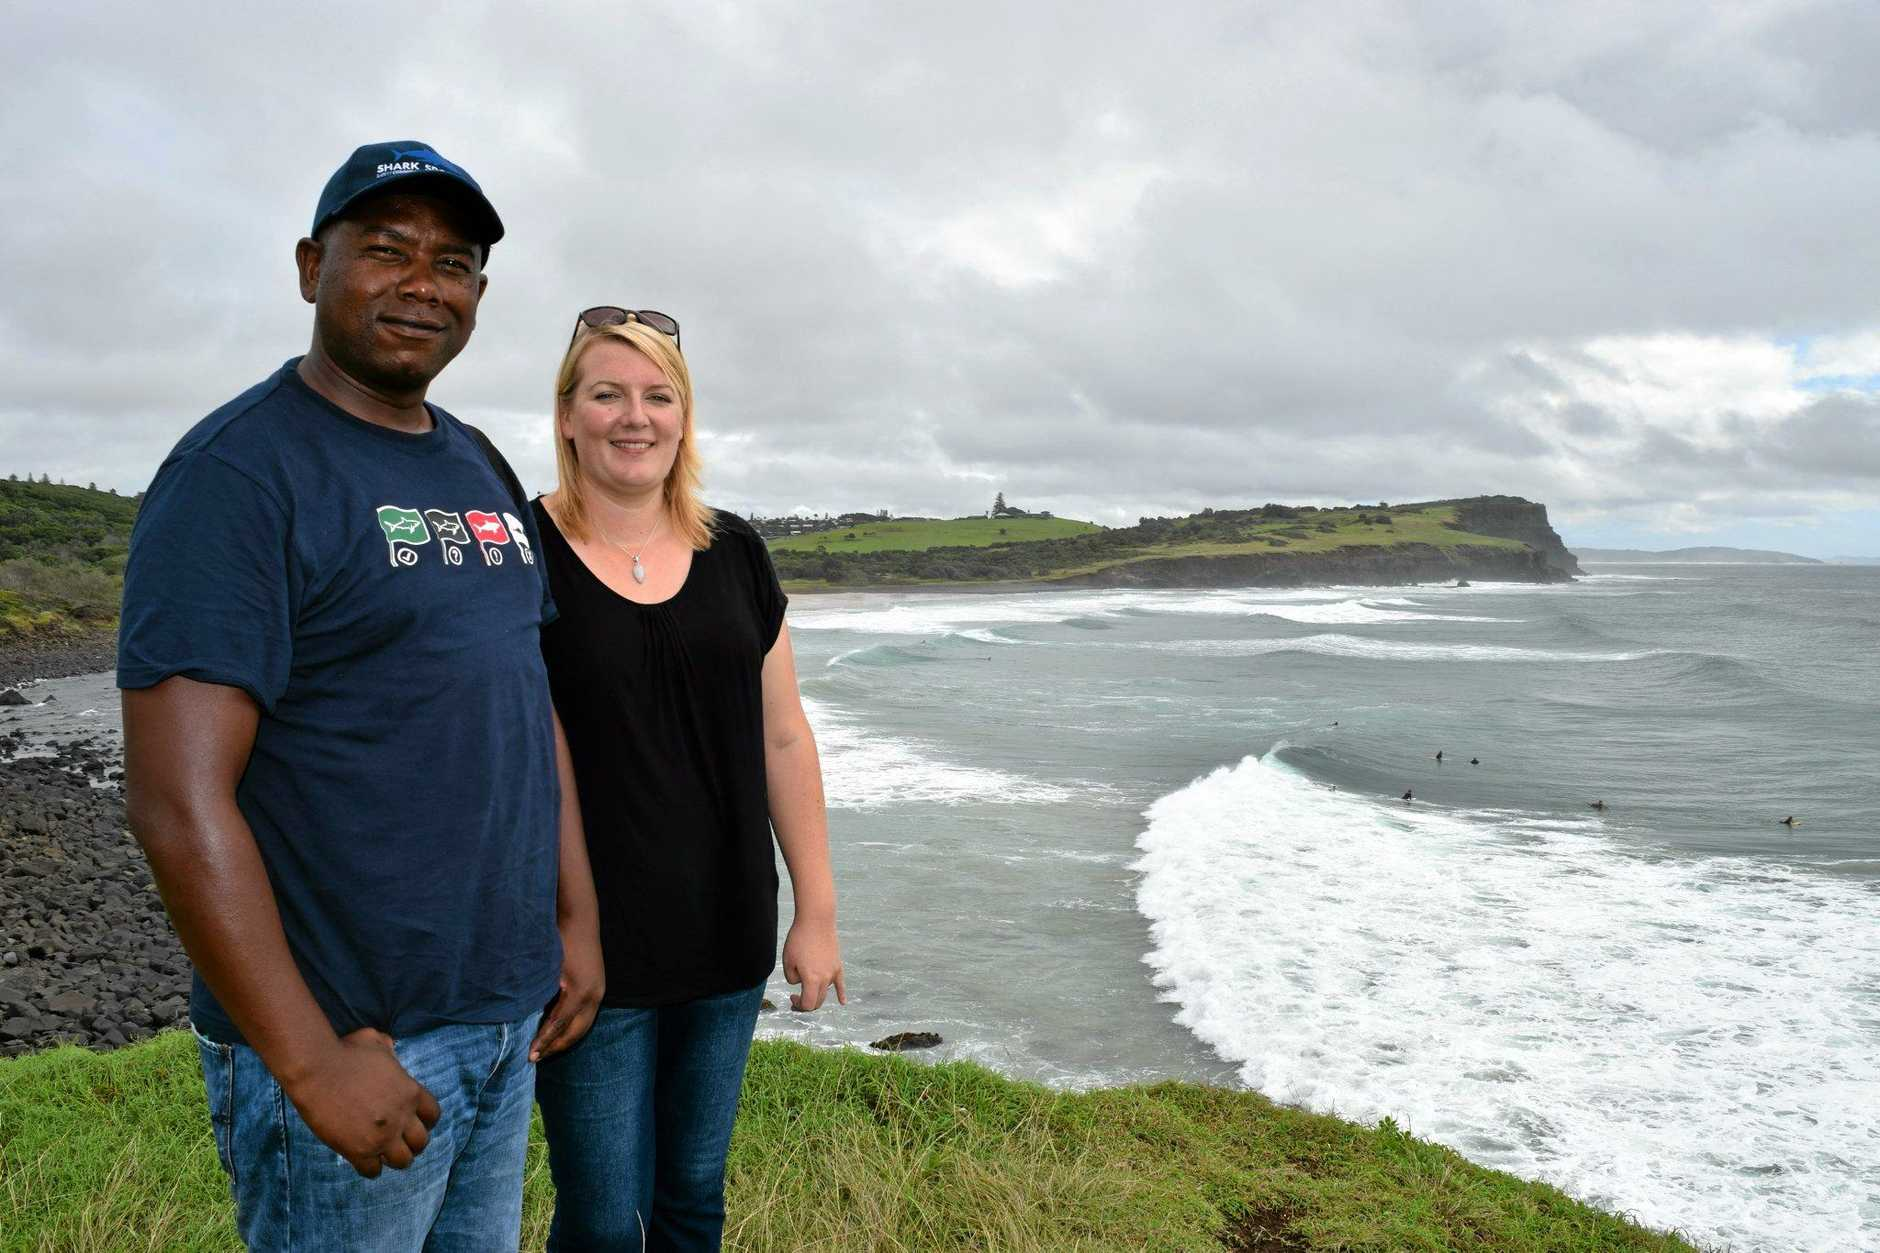 South African shark spotters (pictured from left) field manager Monwabisi Sikweyiya and project manager Sarah Waries at Boulder Beach. The pair were surveying locations from Byron Bay to Evans Head for their suitability for shark spotting.